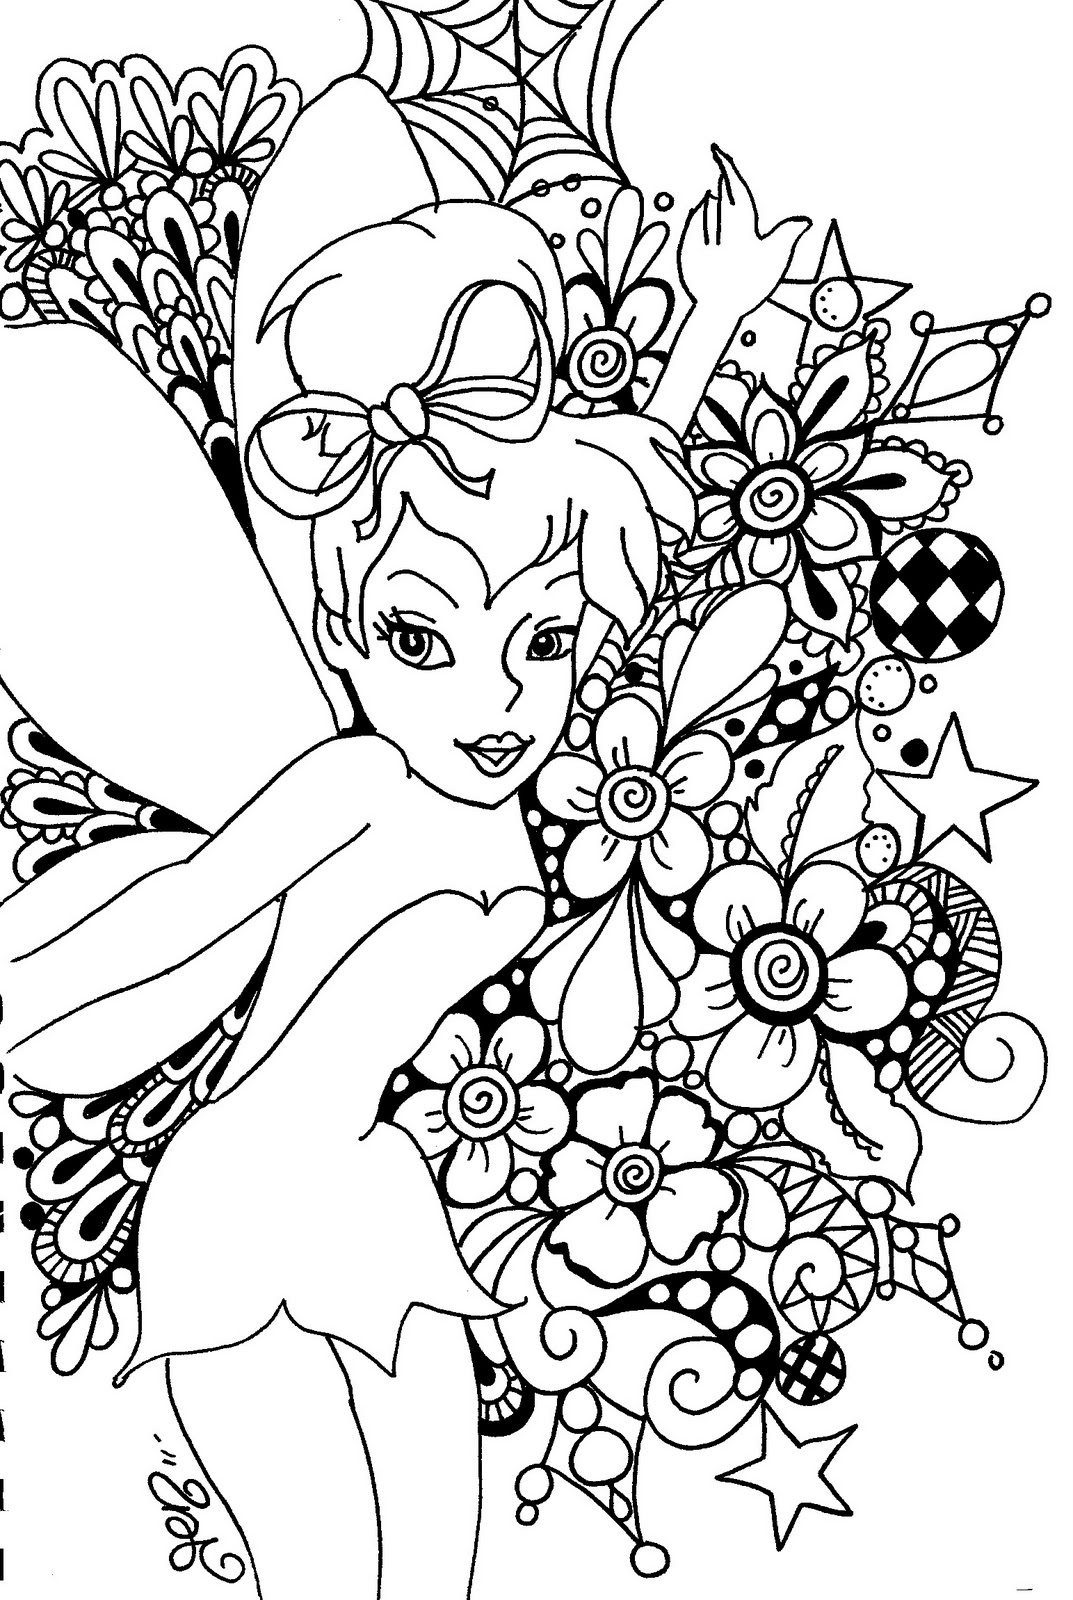 Free Online Coloring Pages To Print at GetDrawings.com | Free for ...